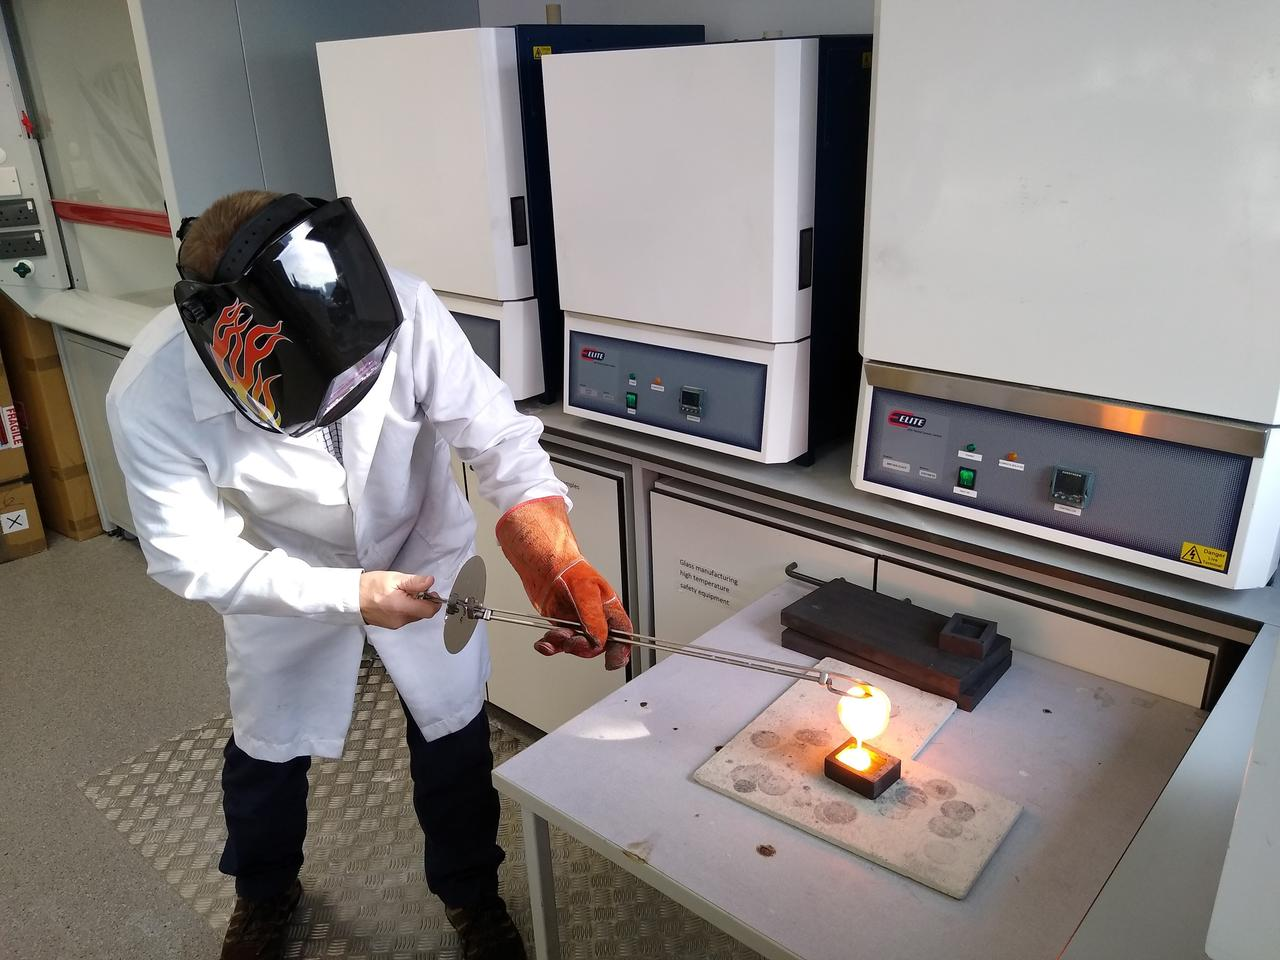 Rods of the material are formed by pouring molten glass into molds